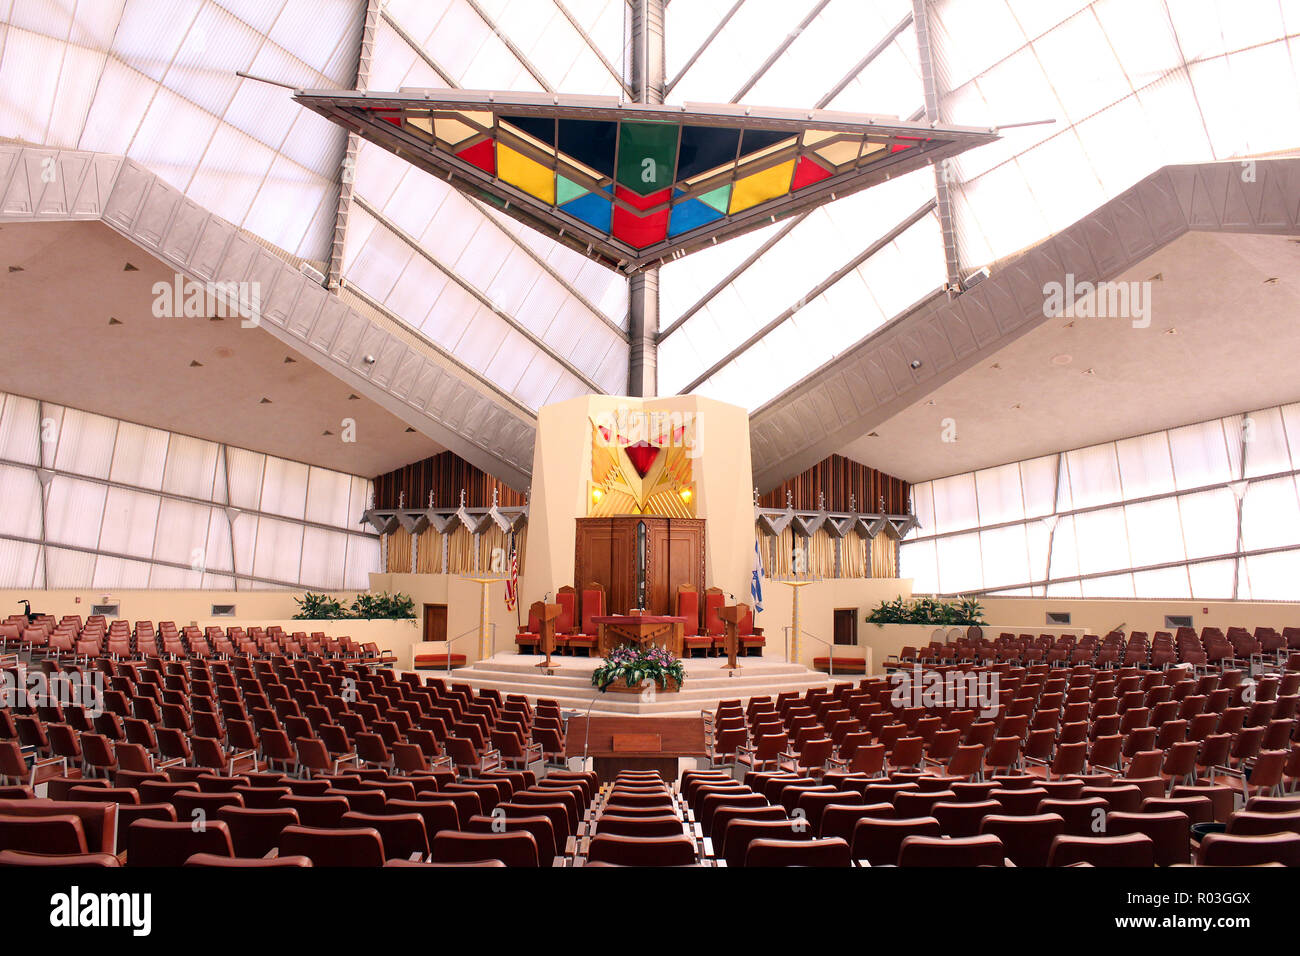 Interior of Temple Beth Shalom (synagogue designed by Frank Lloyd Wright, 1959), Elkins Park, Pennsylvania, USA - Stock Image